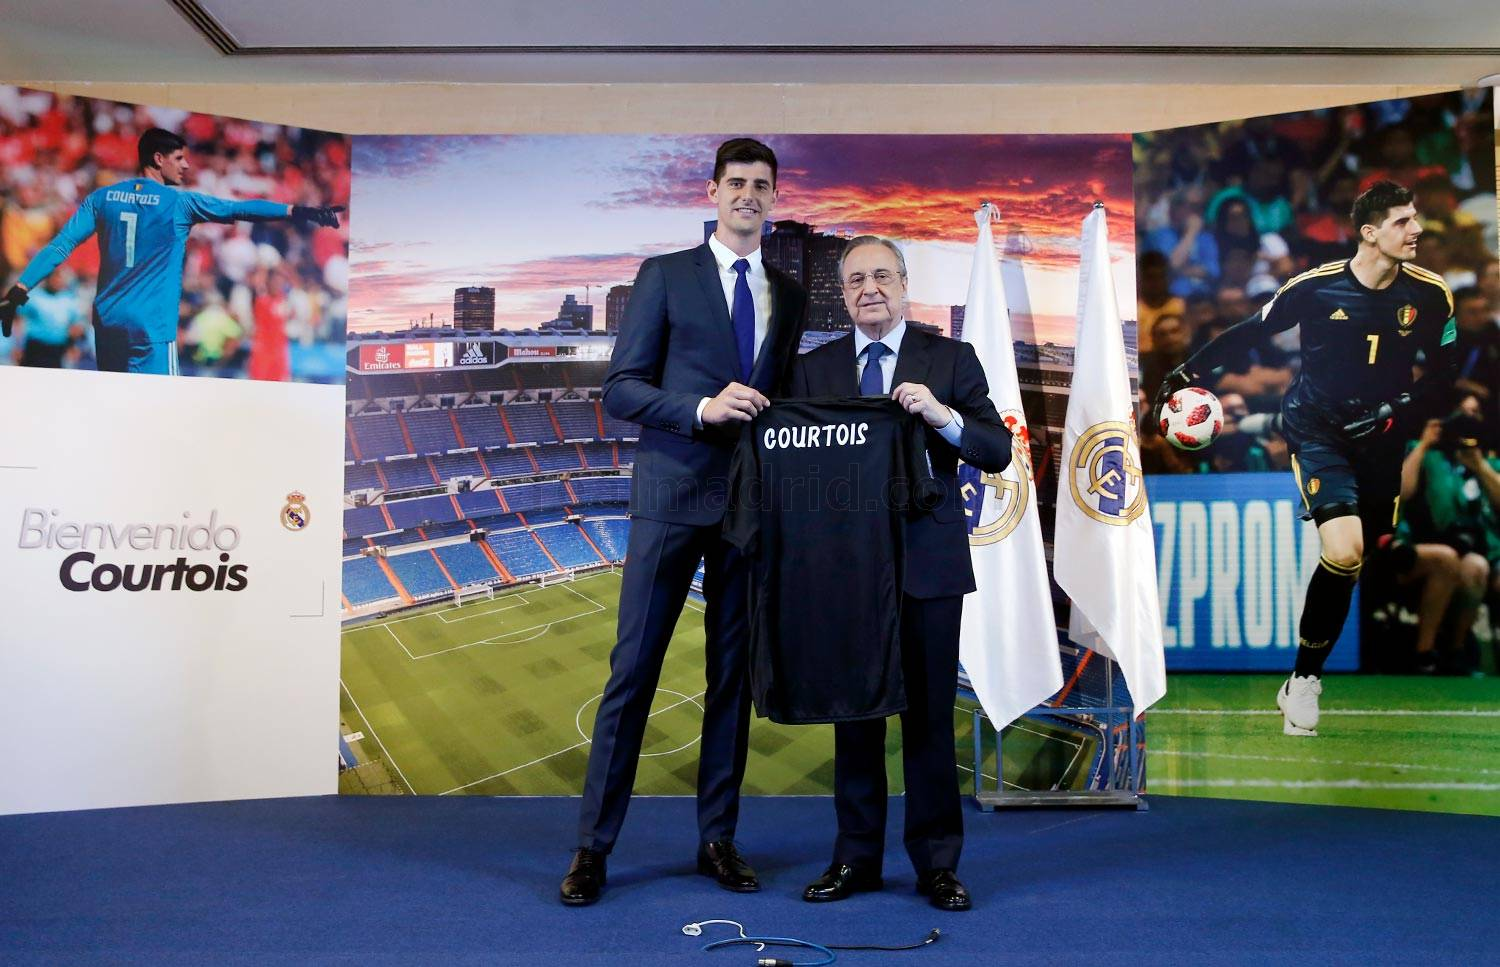 ¿Cuánto mide Thibaut Courtois? - Altura - Real height _1rm9916-3